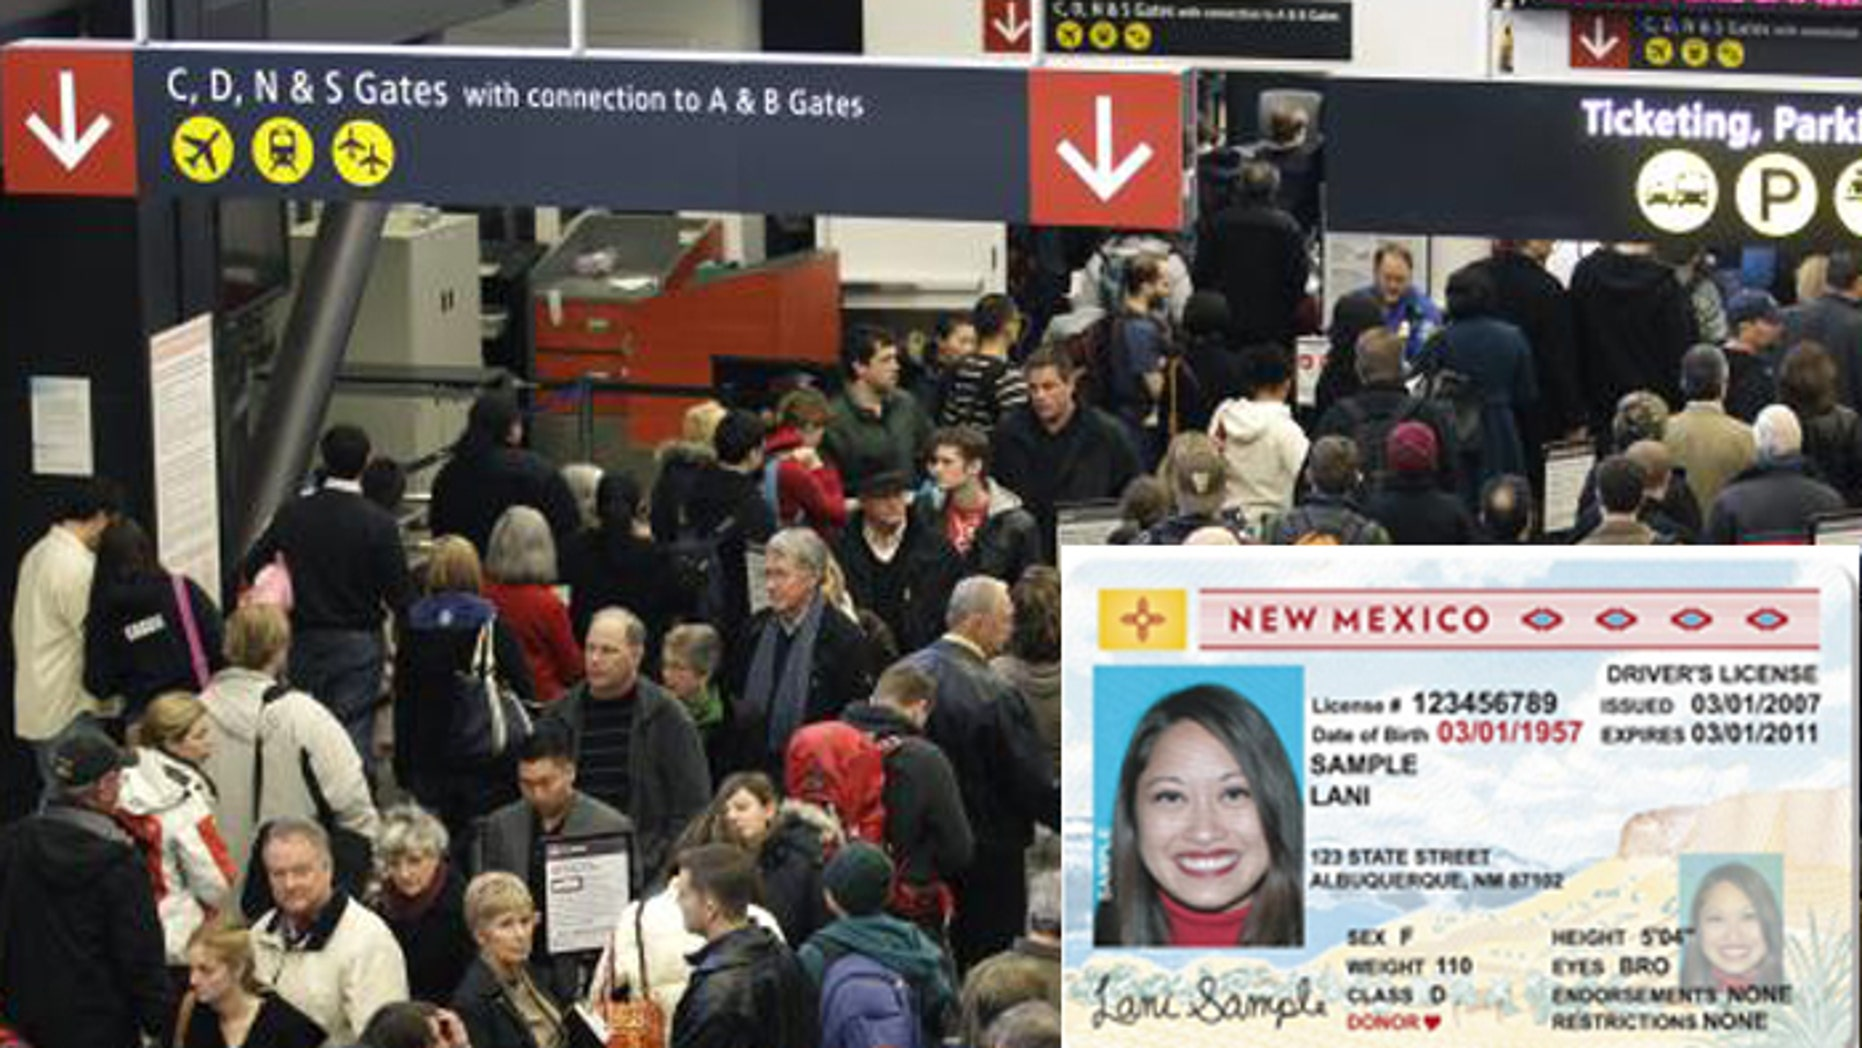 Passport, please: New Mexico air travelers won't be able to board planes using just a state driver's license after the federal government denied further postponement with REAL ID Act compliance.